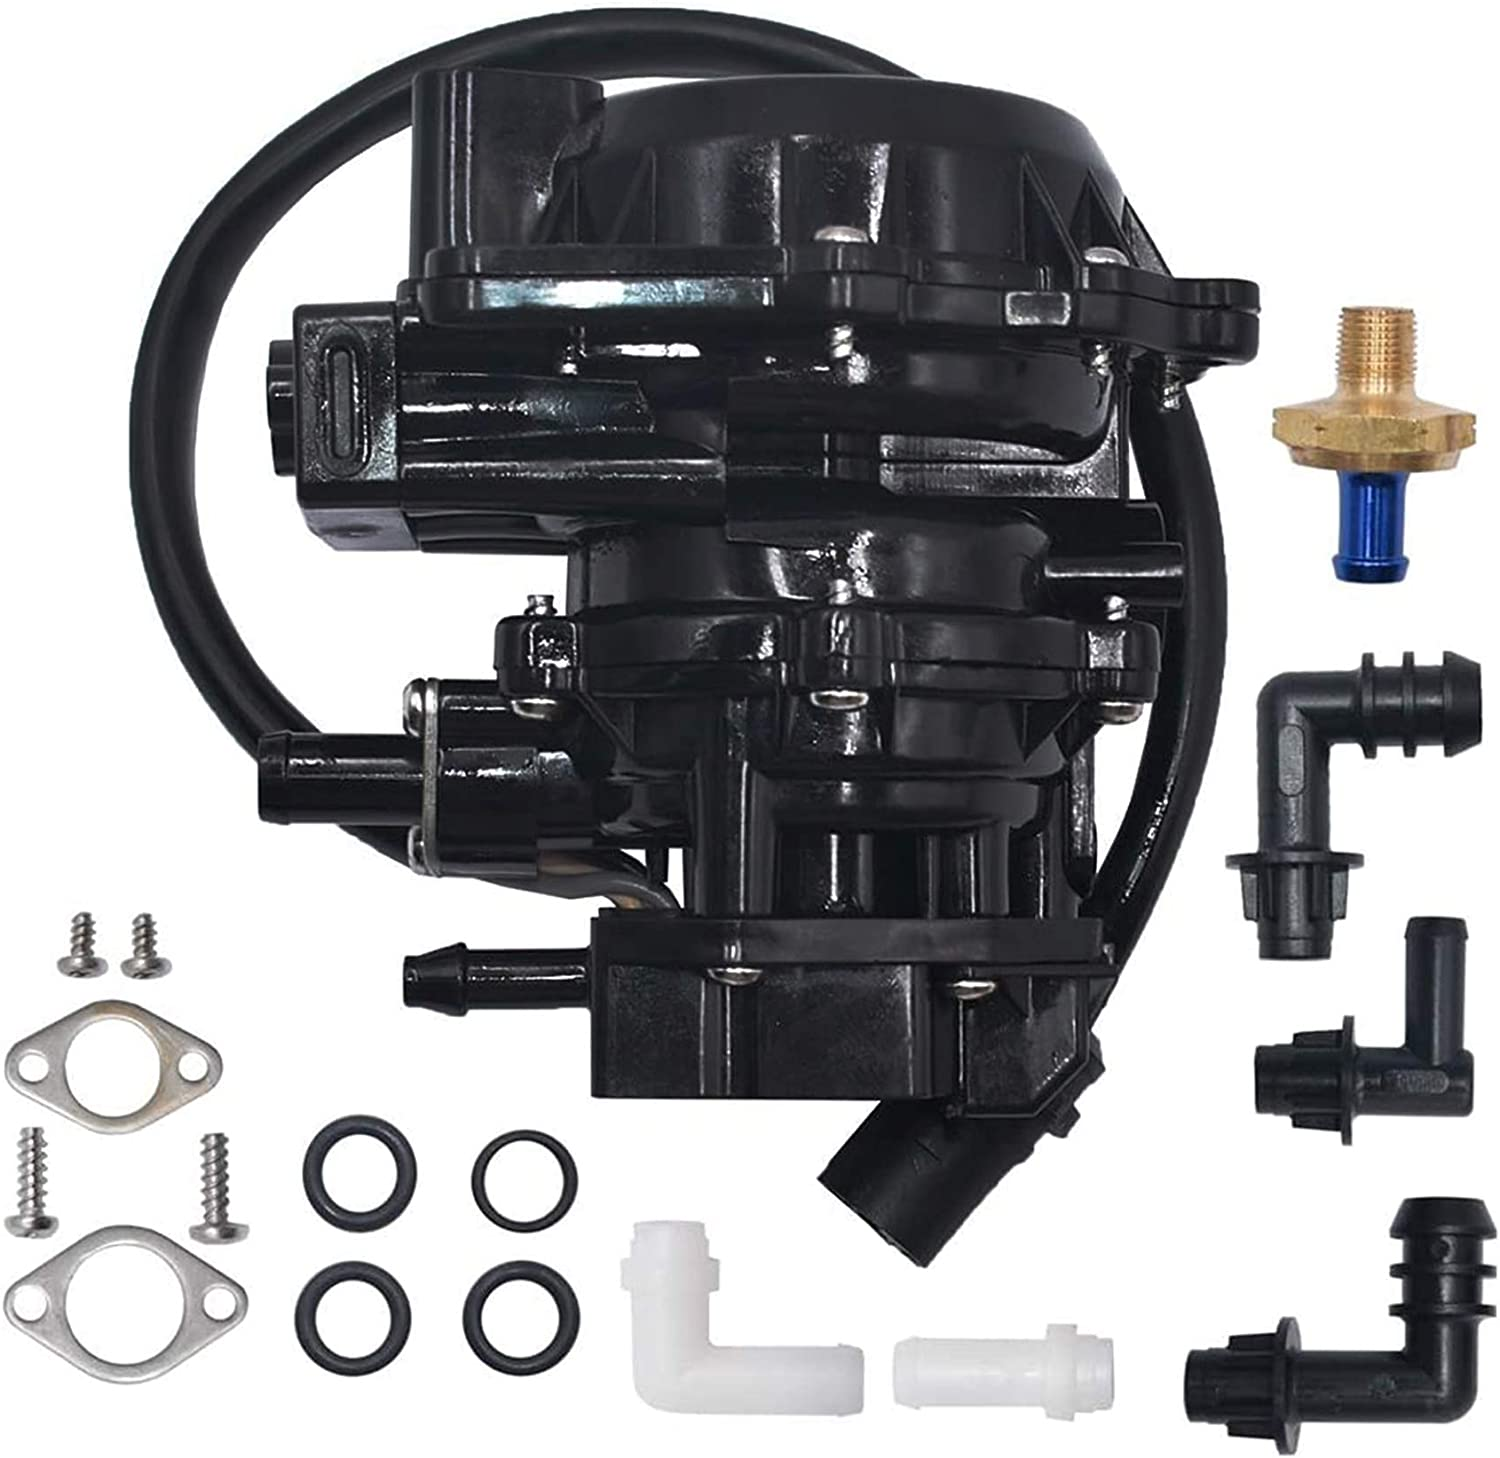 5YTR 5007420 Fuel Pump 4-Wire Assembly Kit fits Johnson/Evinrude Outboard 1991-2006 w/VRO System